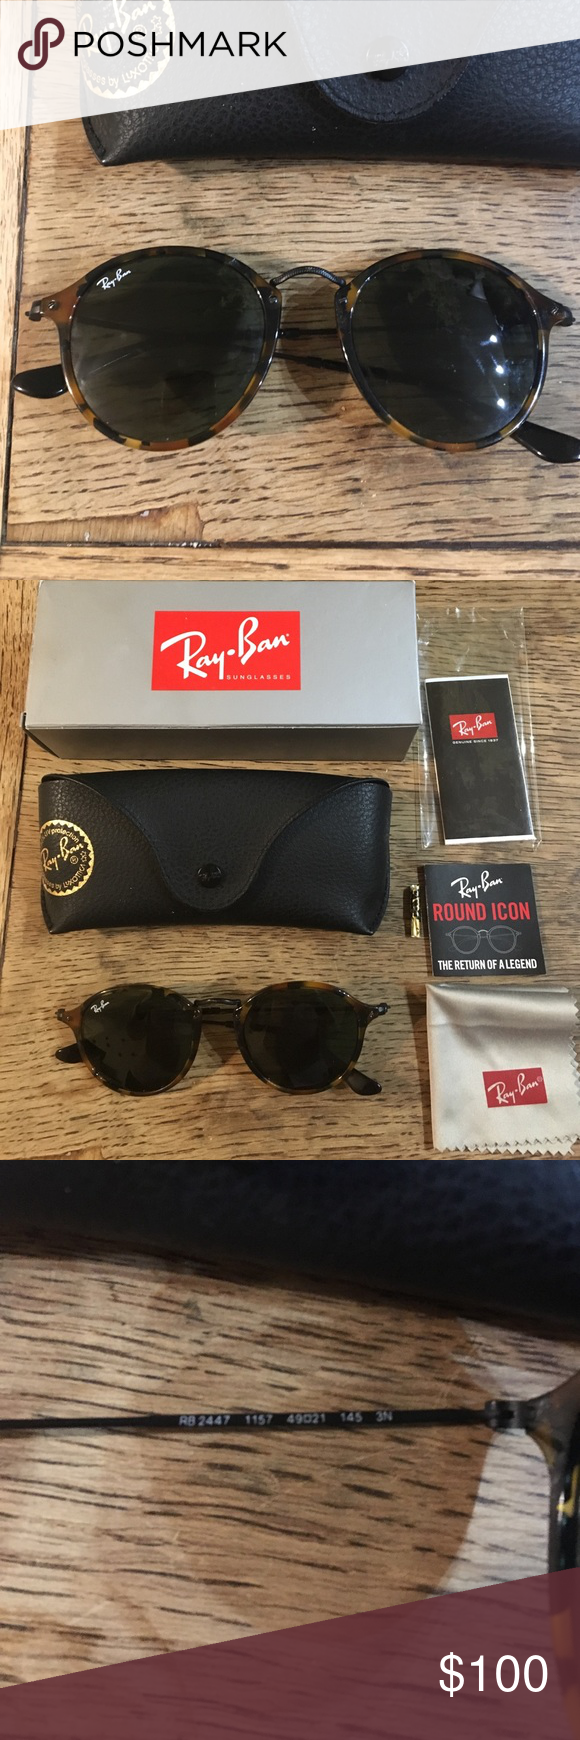 Ray Ban round icon sunglasses Ray Ban round icon sunglasses RB2447 in tortoise shell. 49/21. Great condition. Includes case, cloth, box, and papers 100% authentic. Ray-Ban Accessories Sunglasses